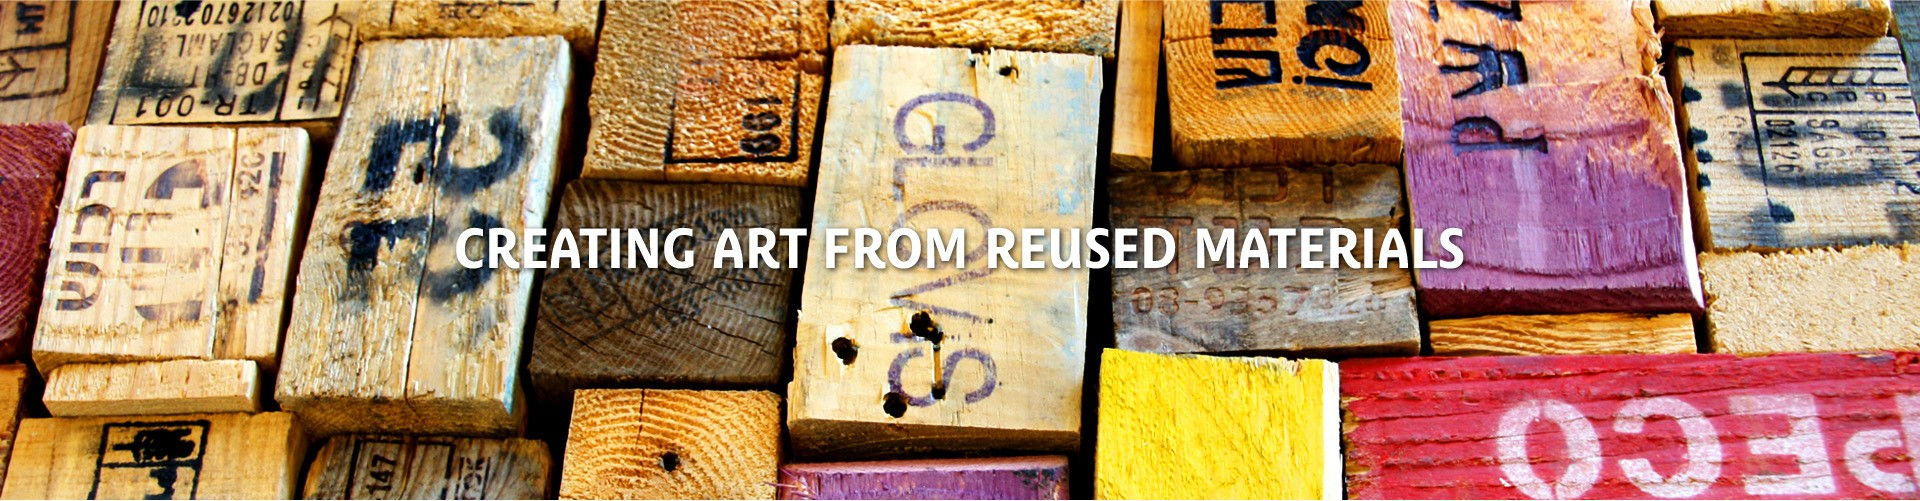 CREATING ART FROM REUSED MATERIALS